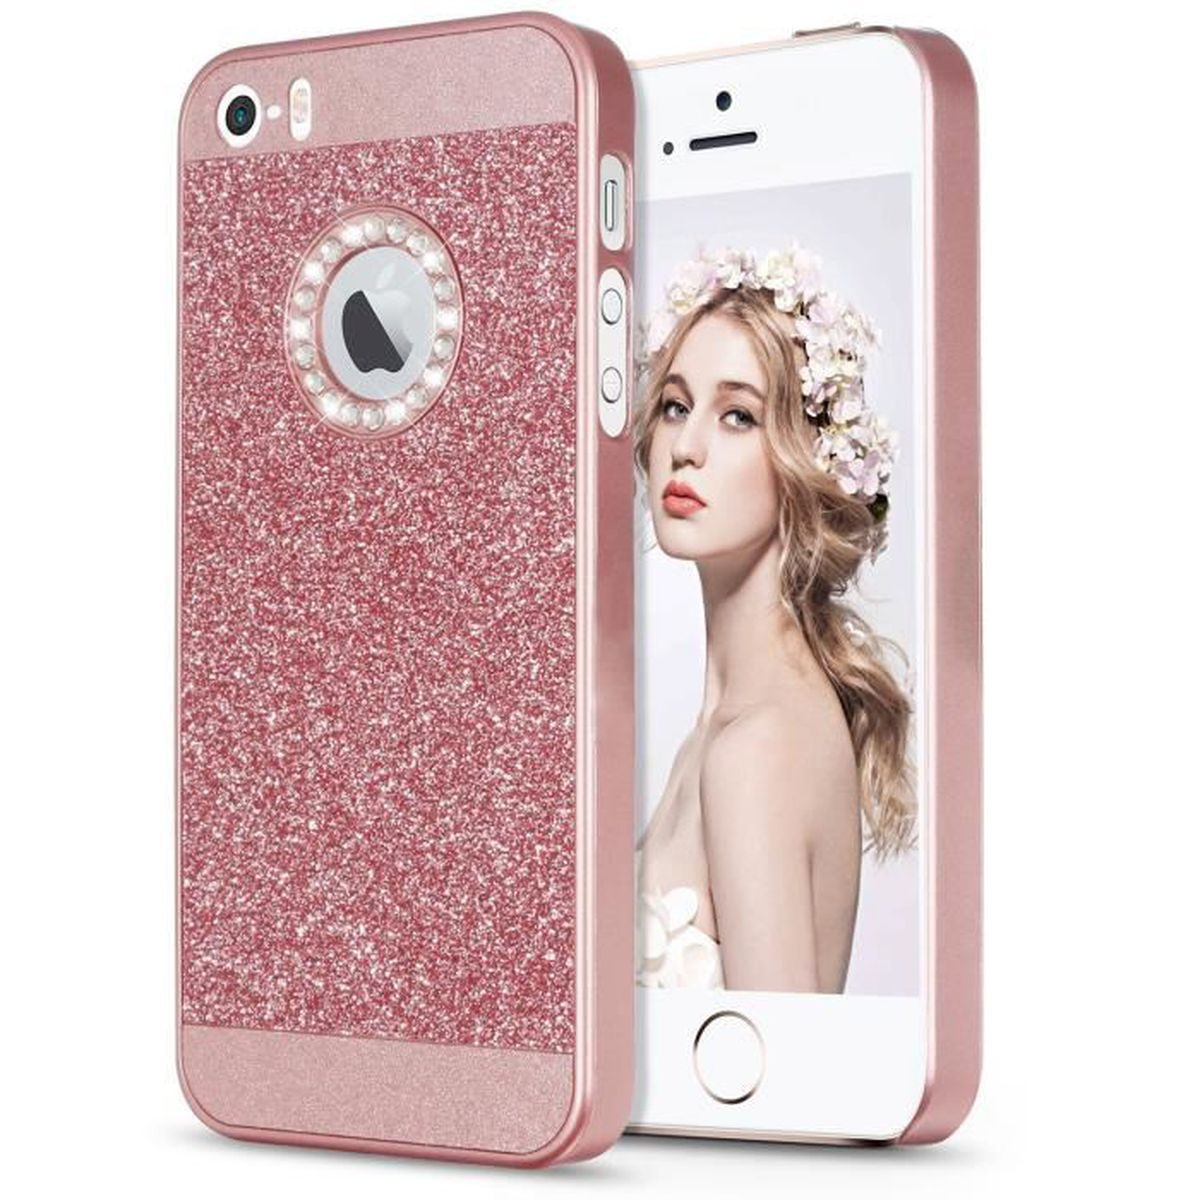 coque housse iphone se 5s 5 or rose bling luxe pla